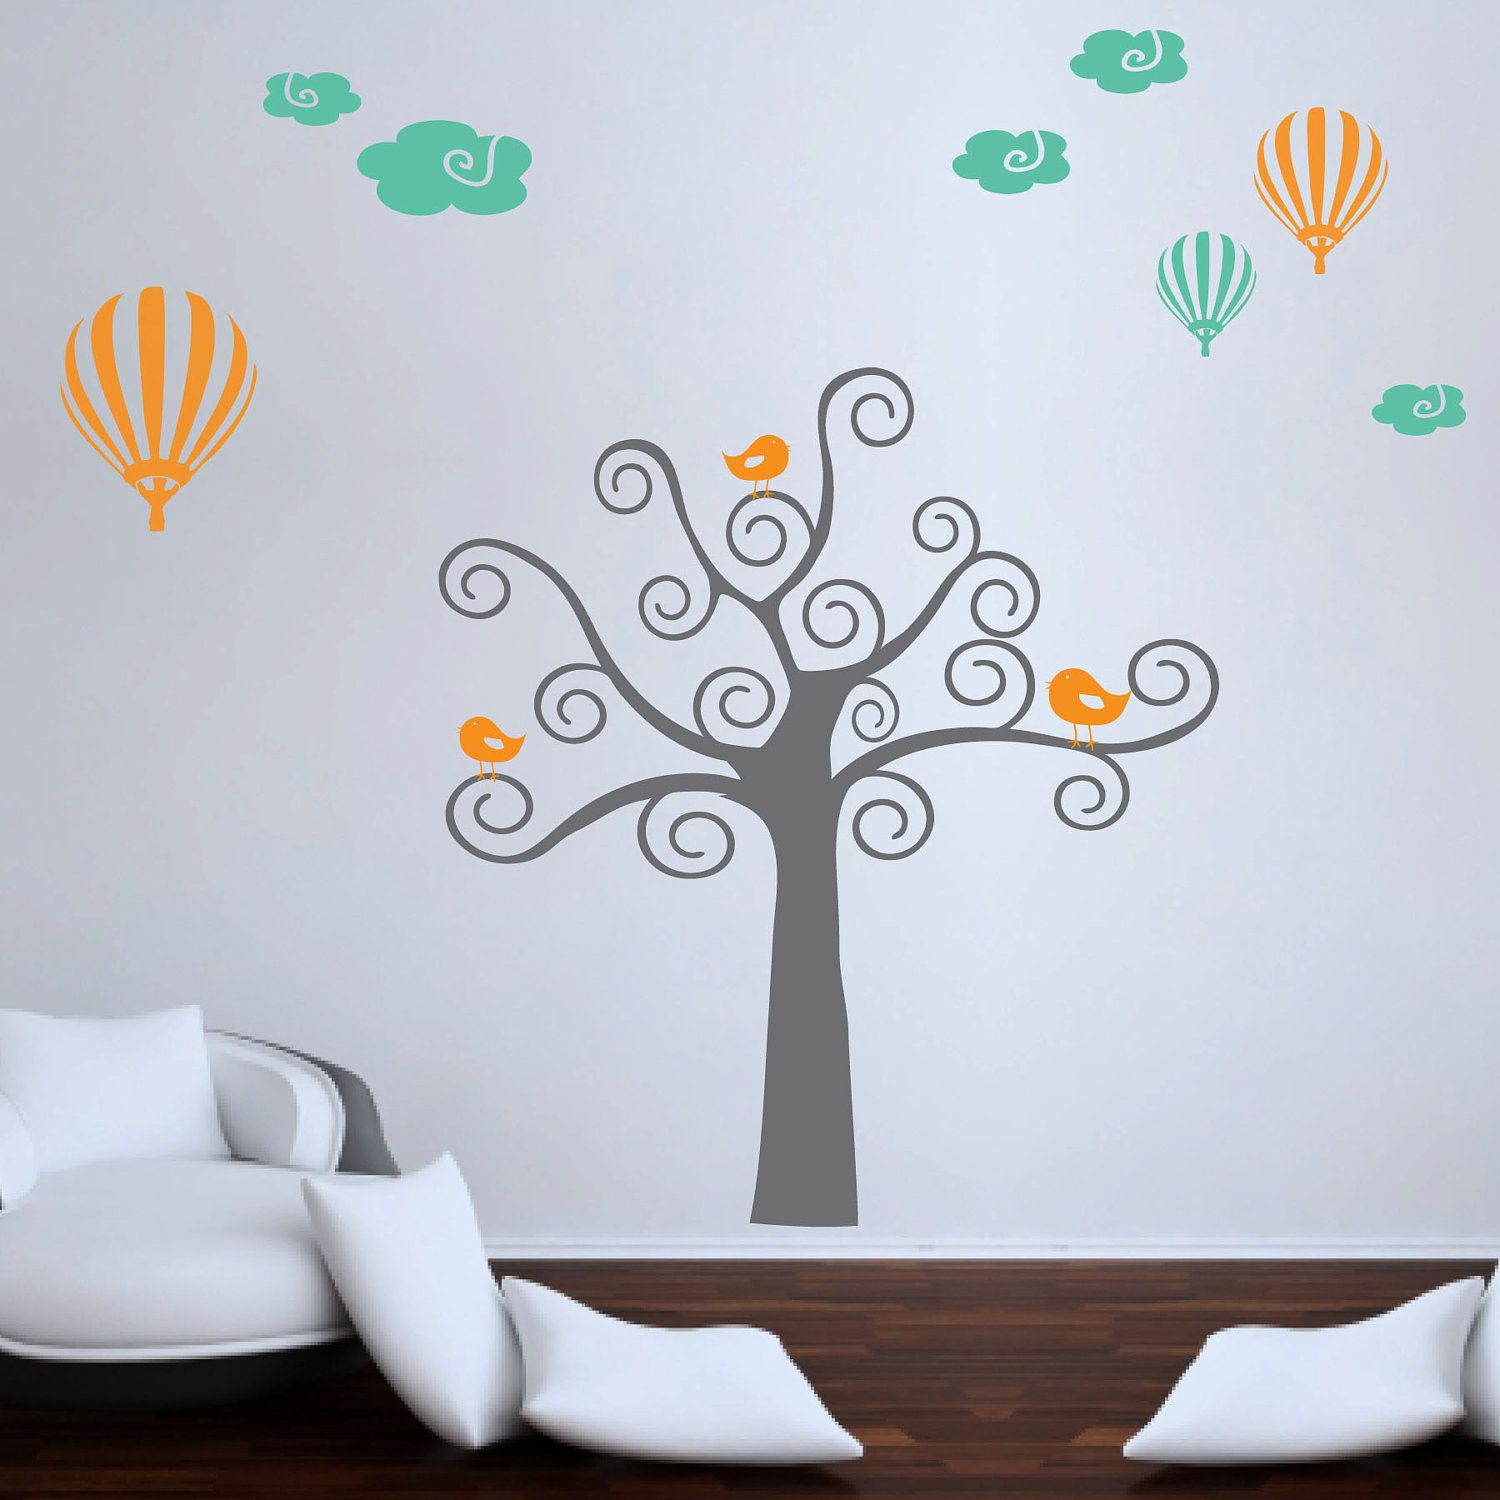 Swirl Tree Wall Decal With Birds  Hot Air Balloon Wall Decal With Clouds   Childrens